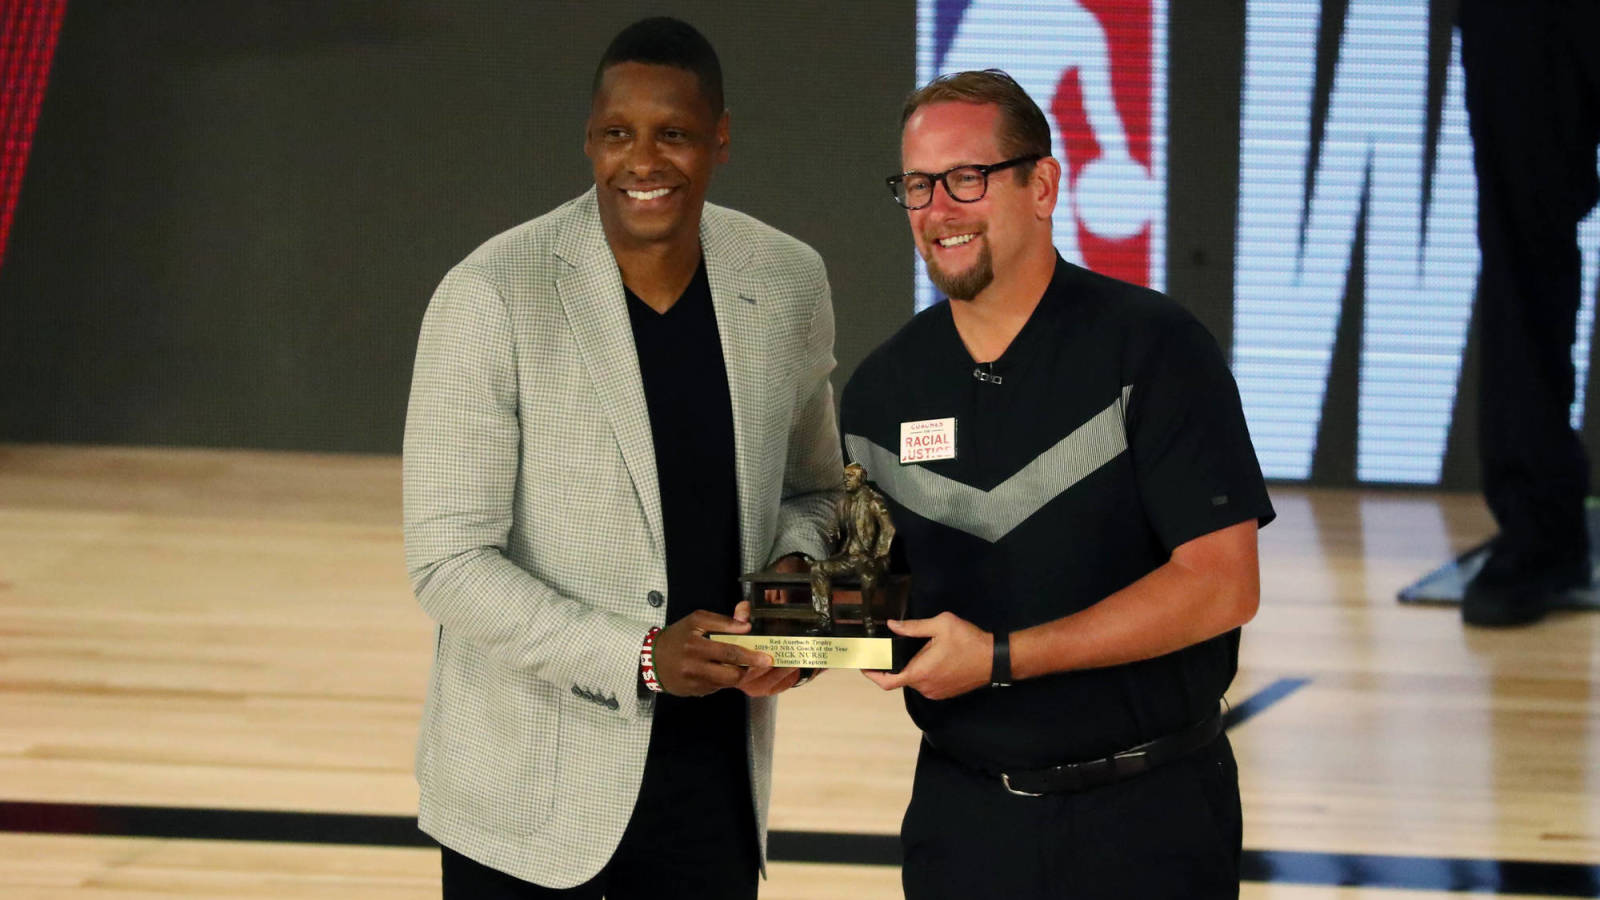 Masai Ujiri gets new contract and promotion from Raptors